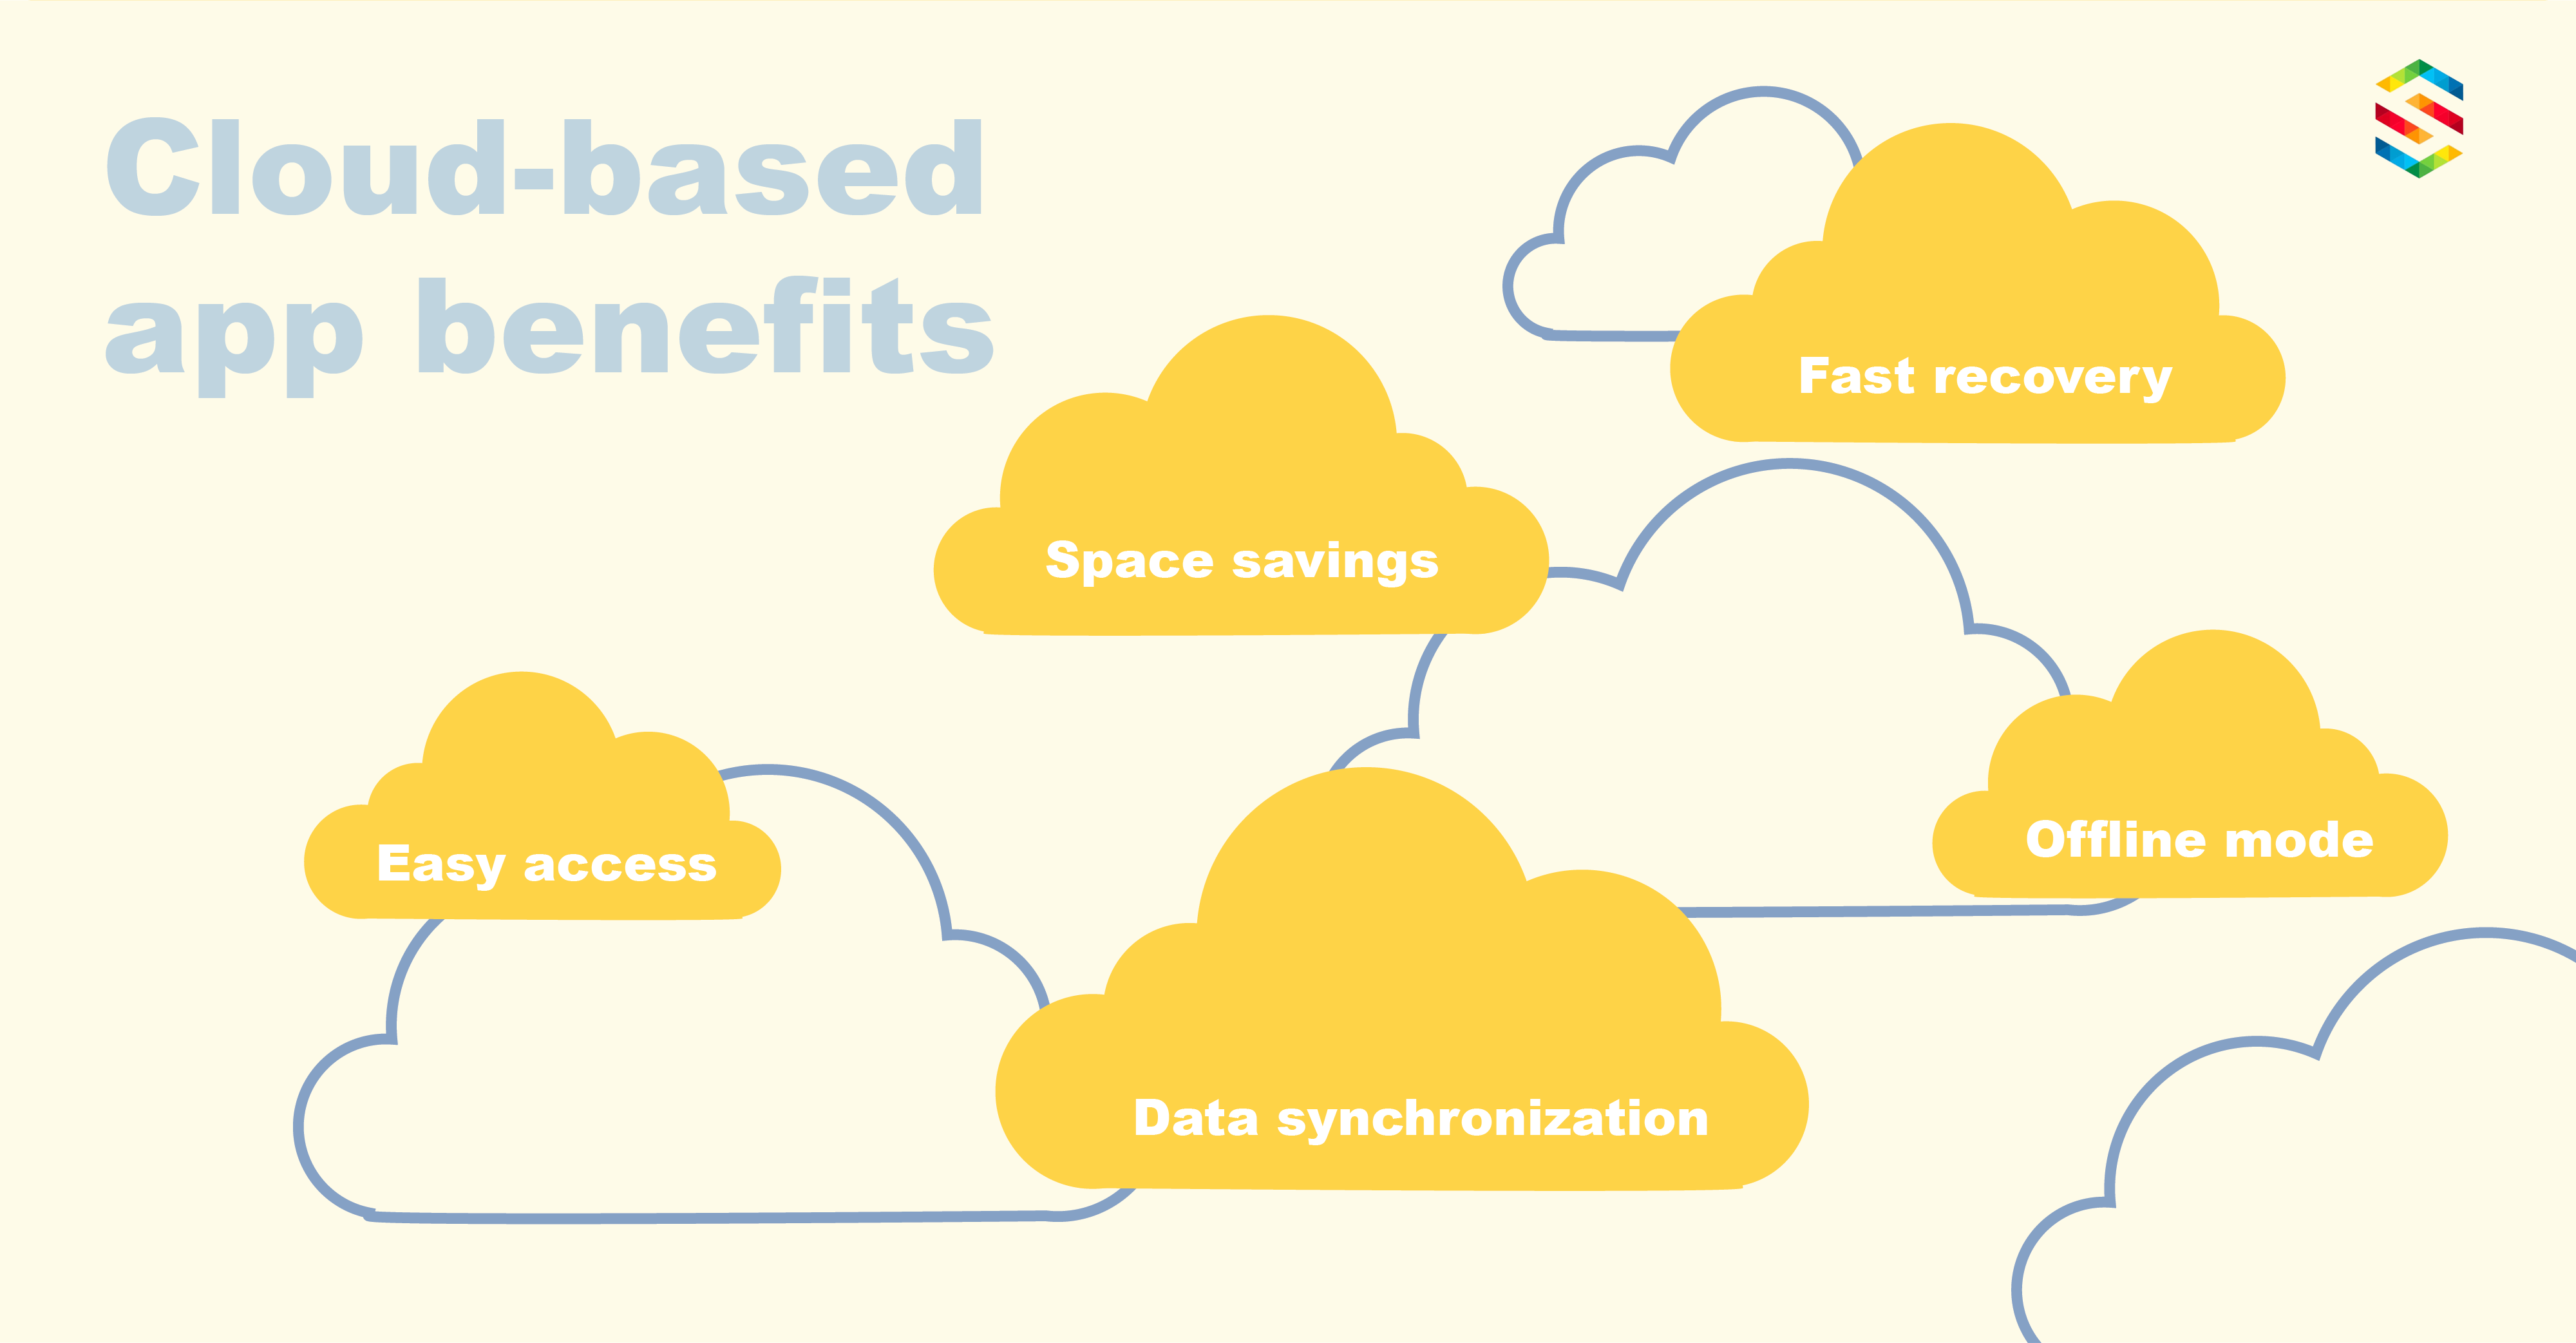 Benefits of cloud-based apps